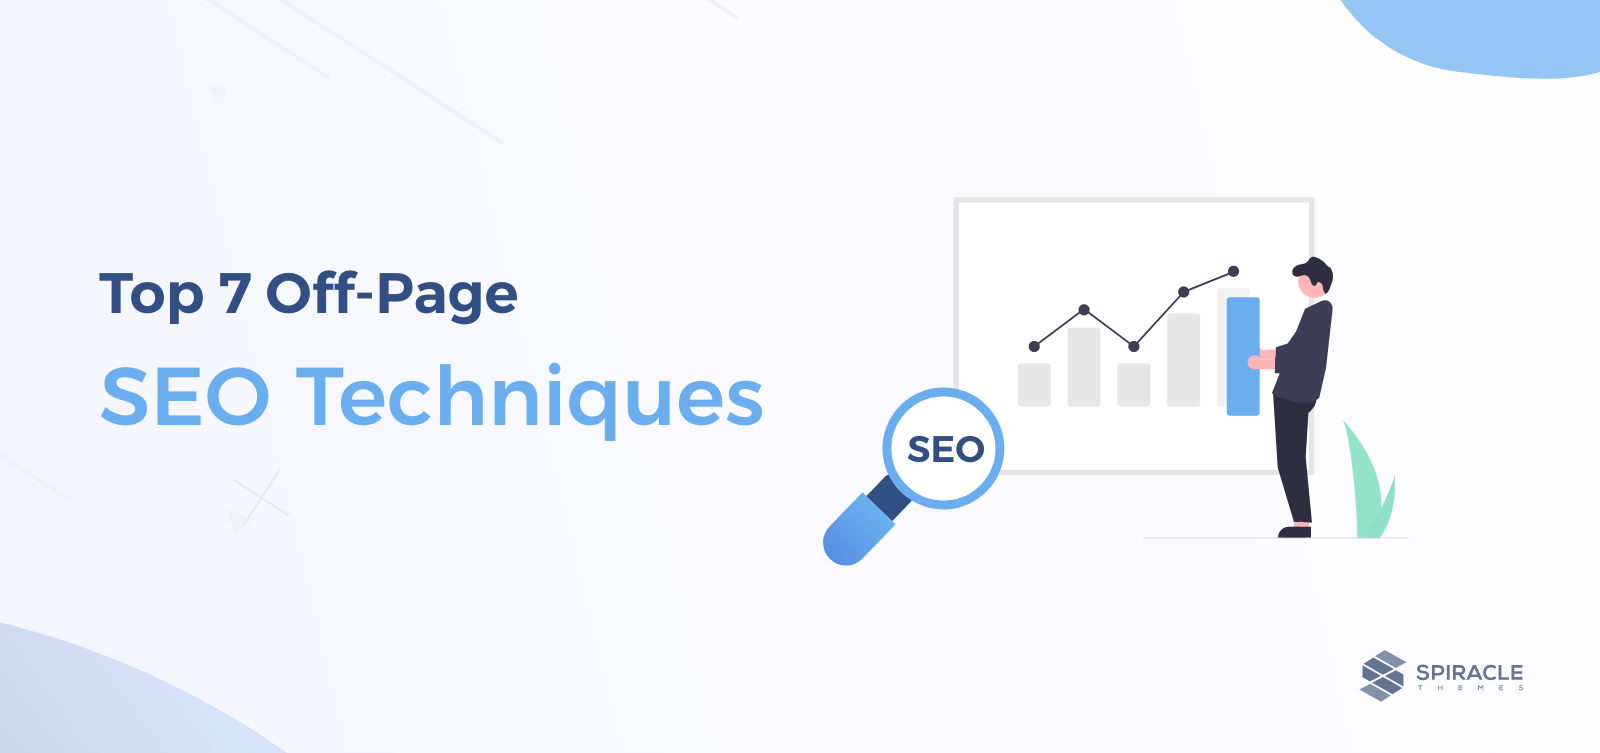 Top 7 Off-Page SEO Techniques to Increase Website Traffic